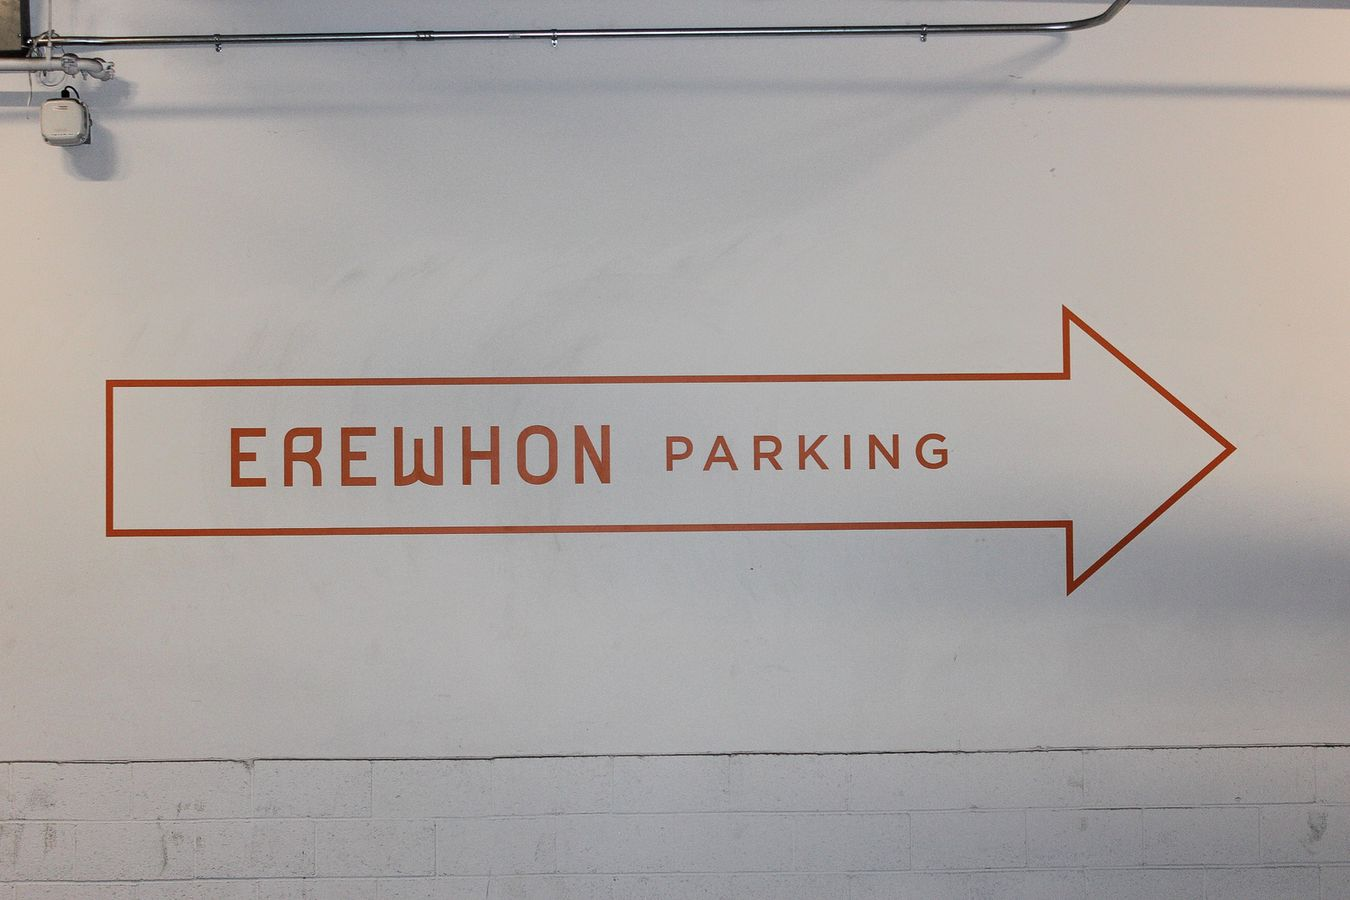 Erewhon parking directional sign